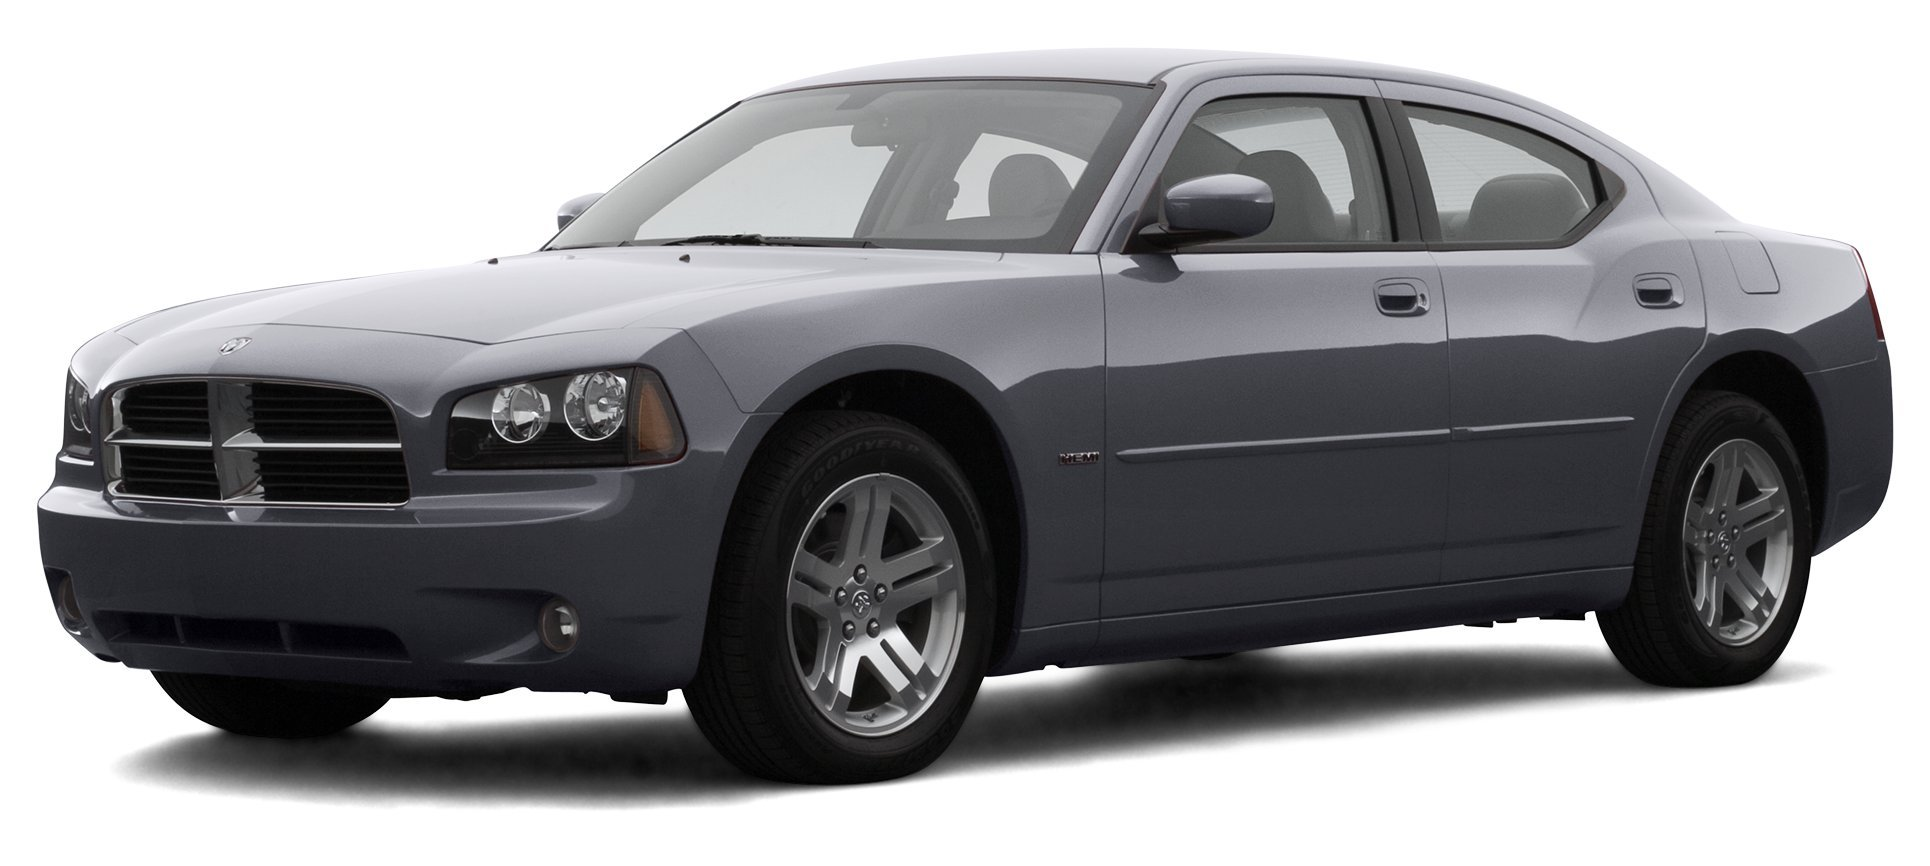 2007 dodge charger 4 door sedan 4 speed automatic transmission rear wheel drive